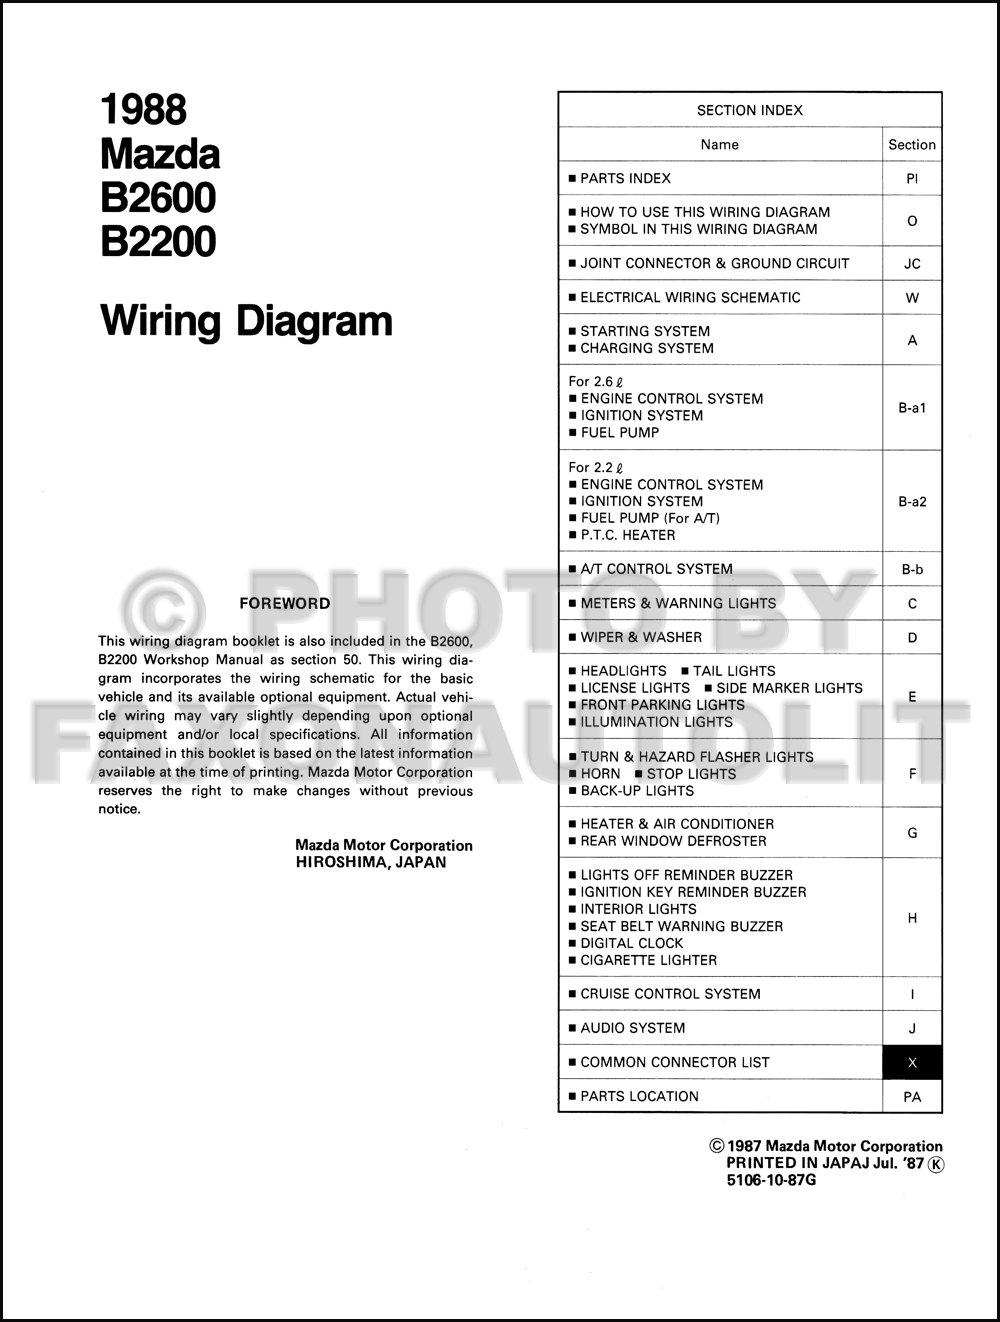 1988 Mazda B2200 Radio Wiring Diagram Electrical Diagrams 1989 Engine Truck House Symbols U2022 1993